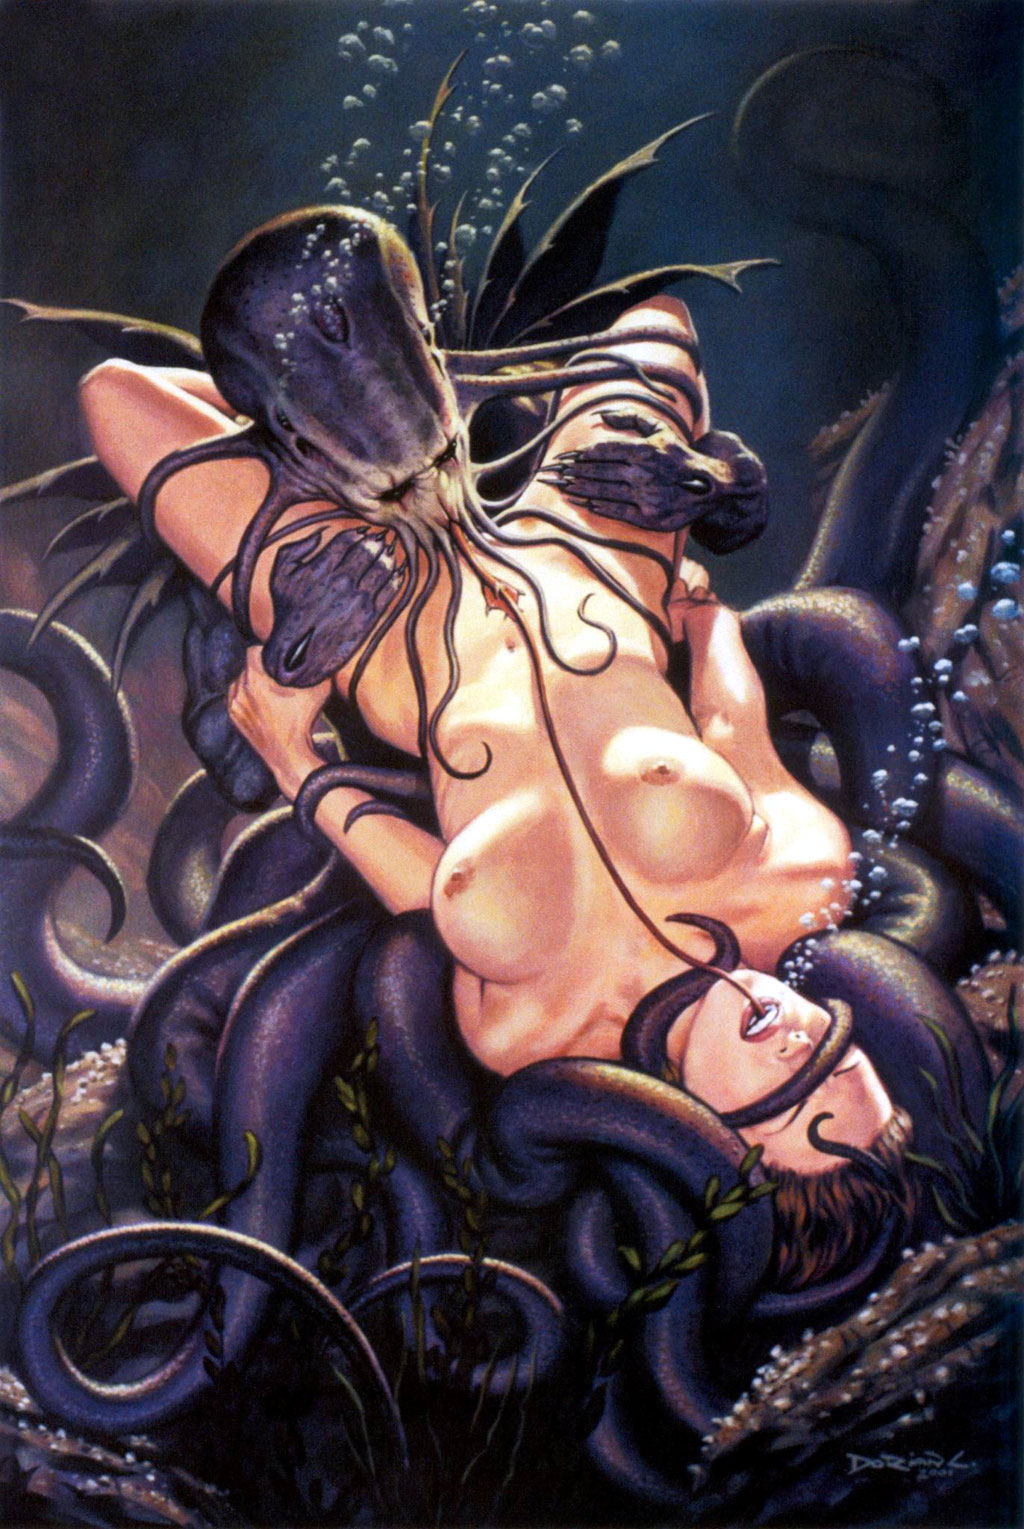 Erotic fantasy art anime sex images